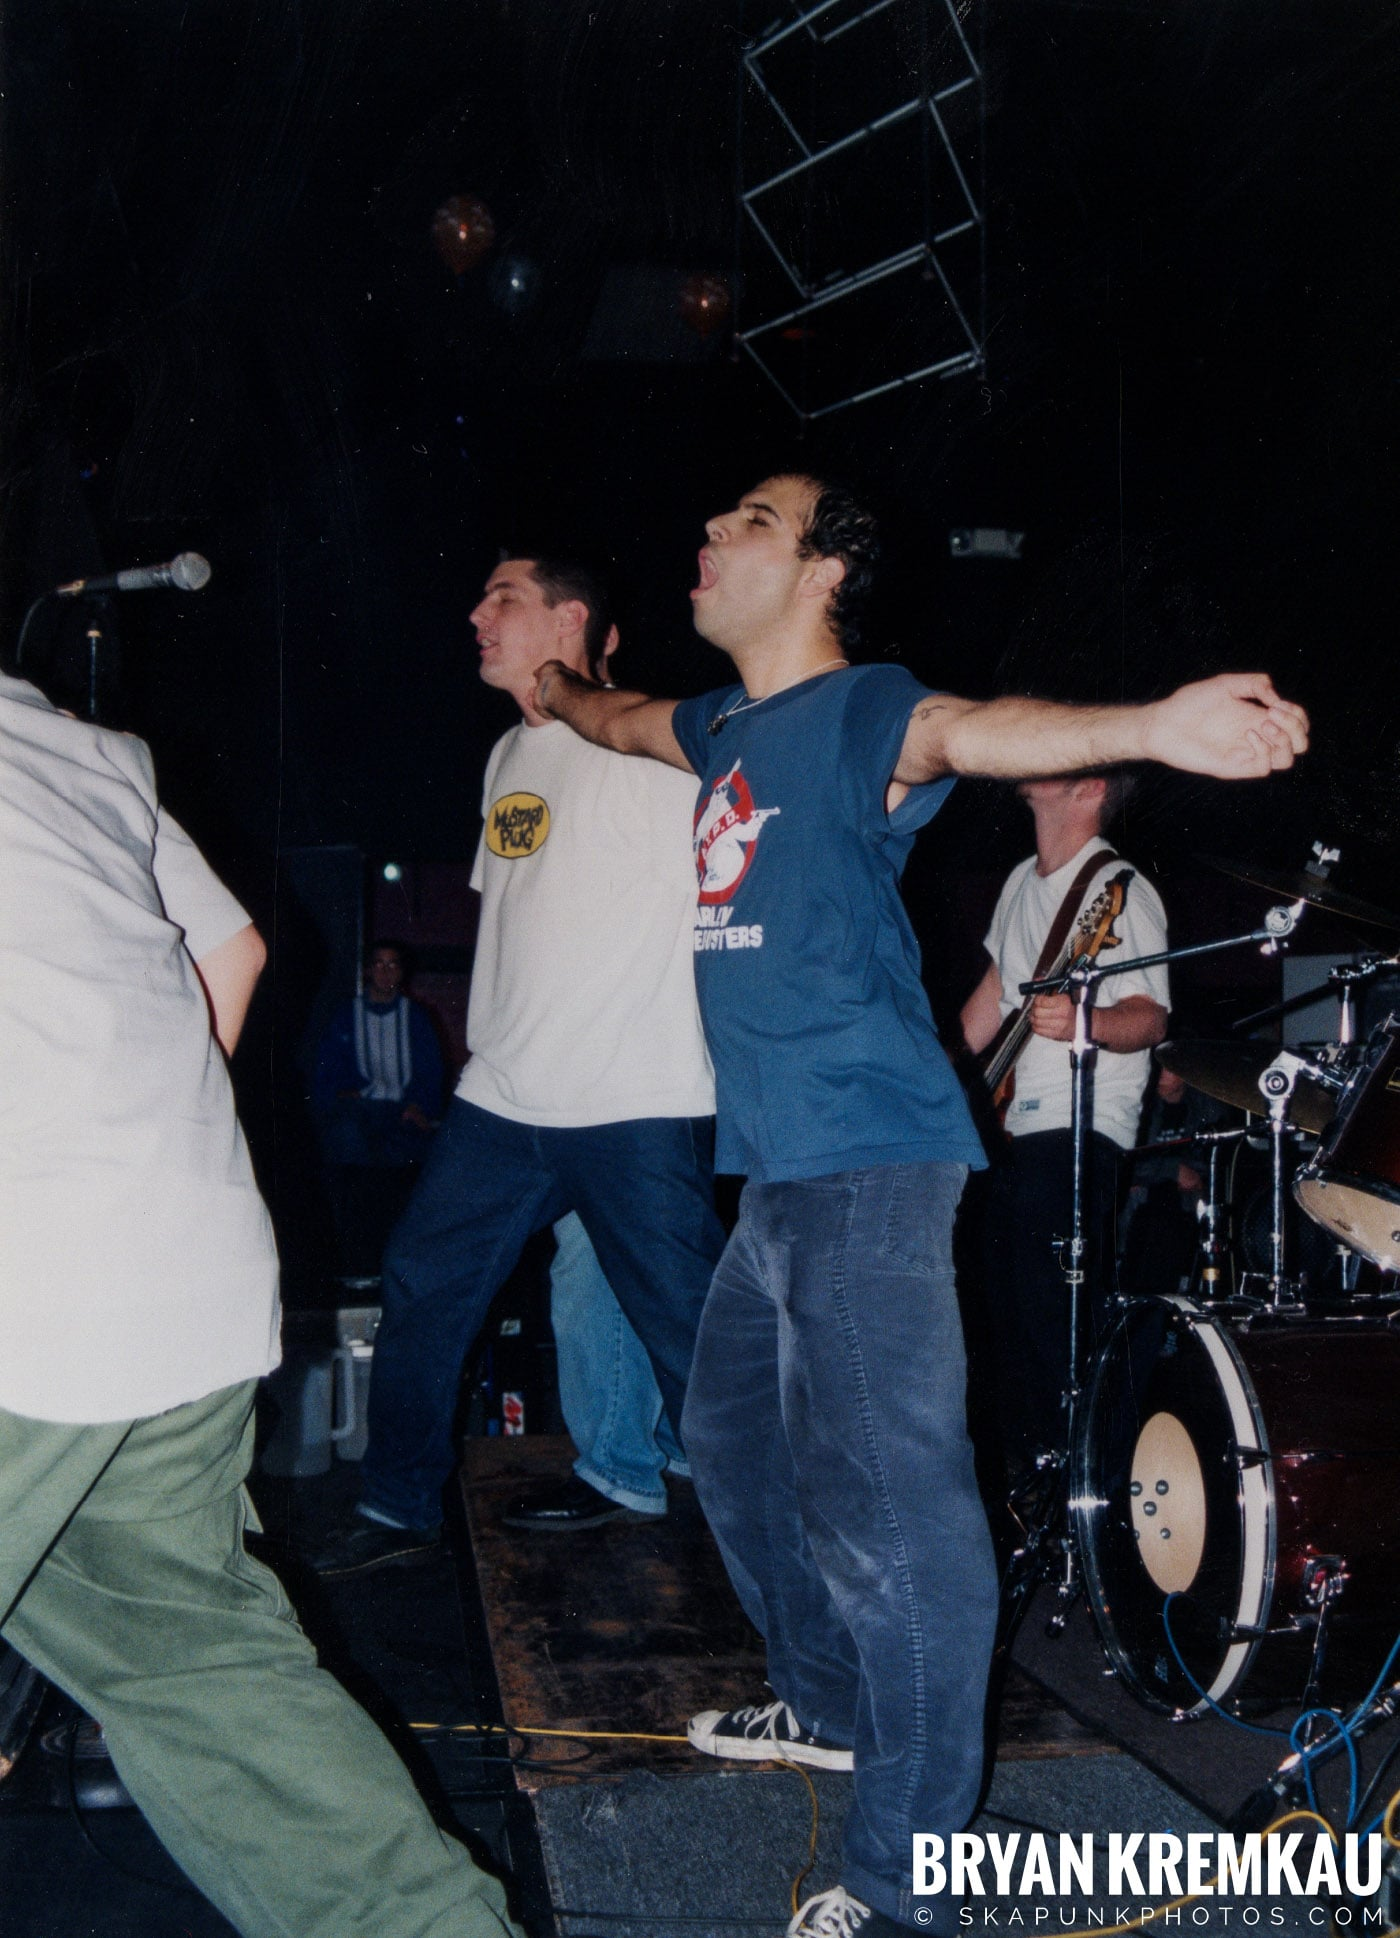 Edna's Goldfish @ Skater's World, Wayne, NJ - 11.7.98 (2)